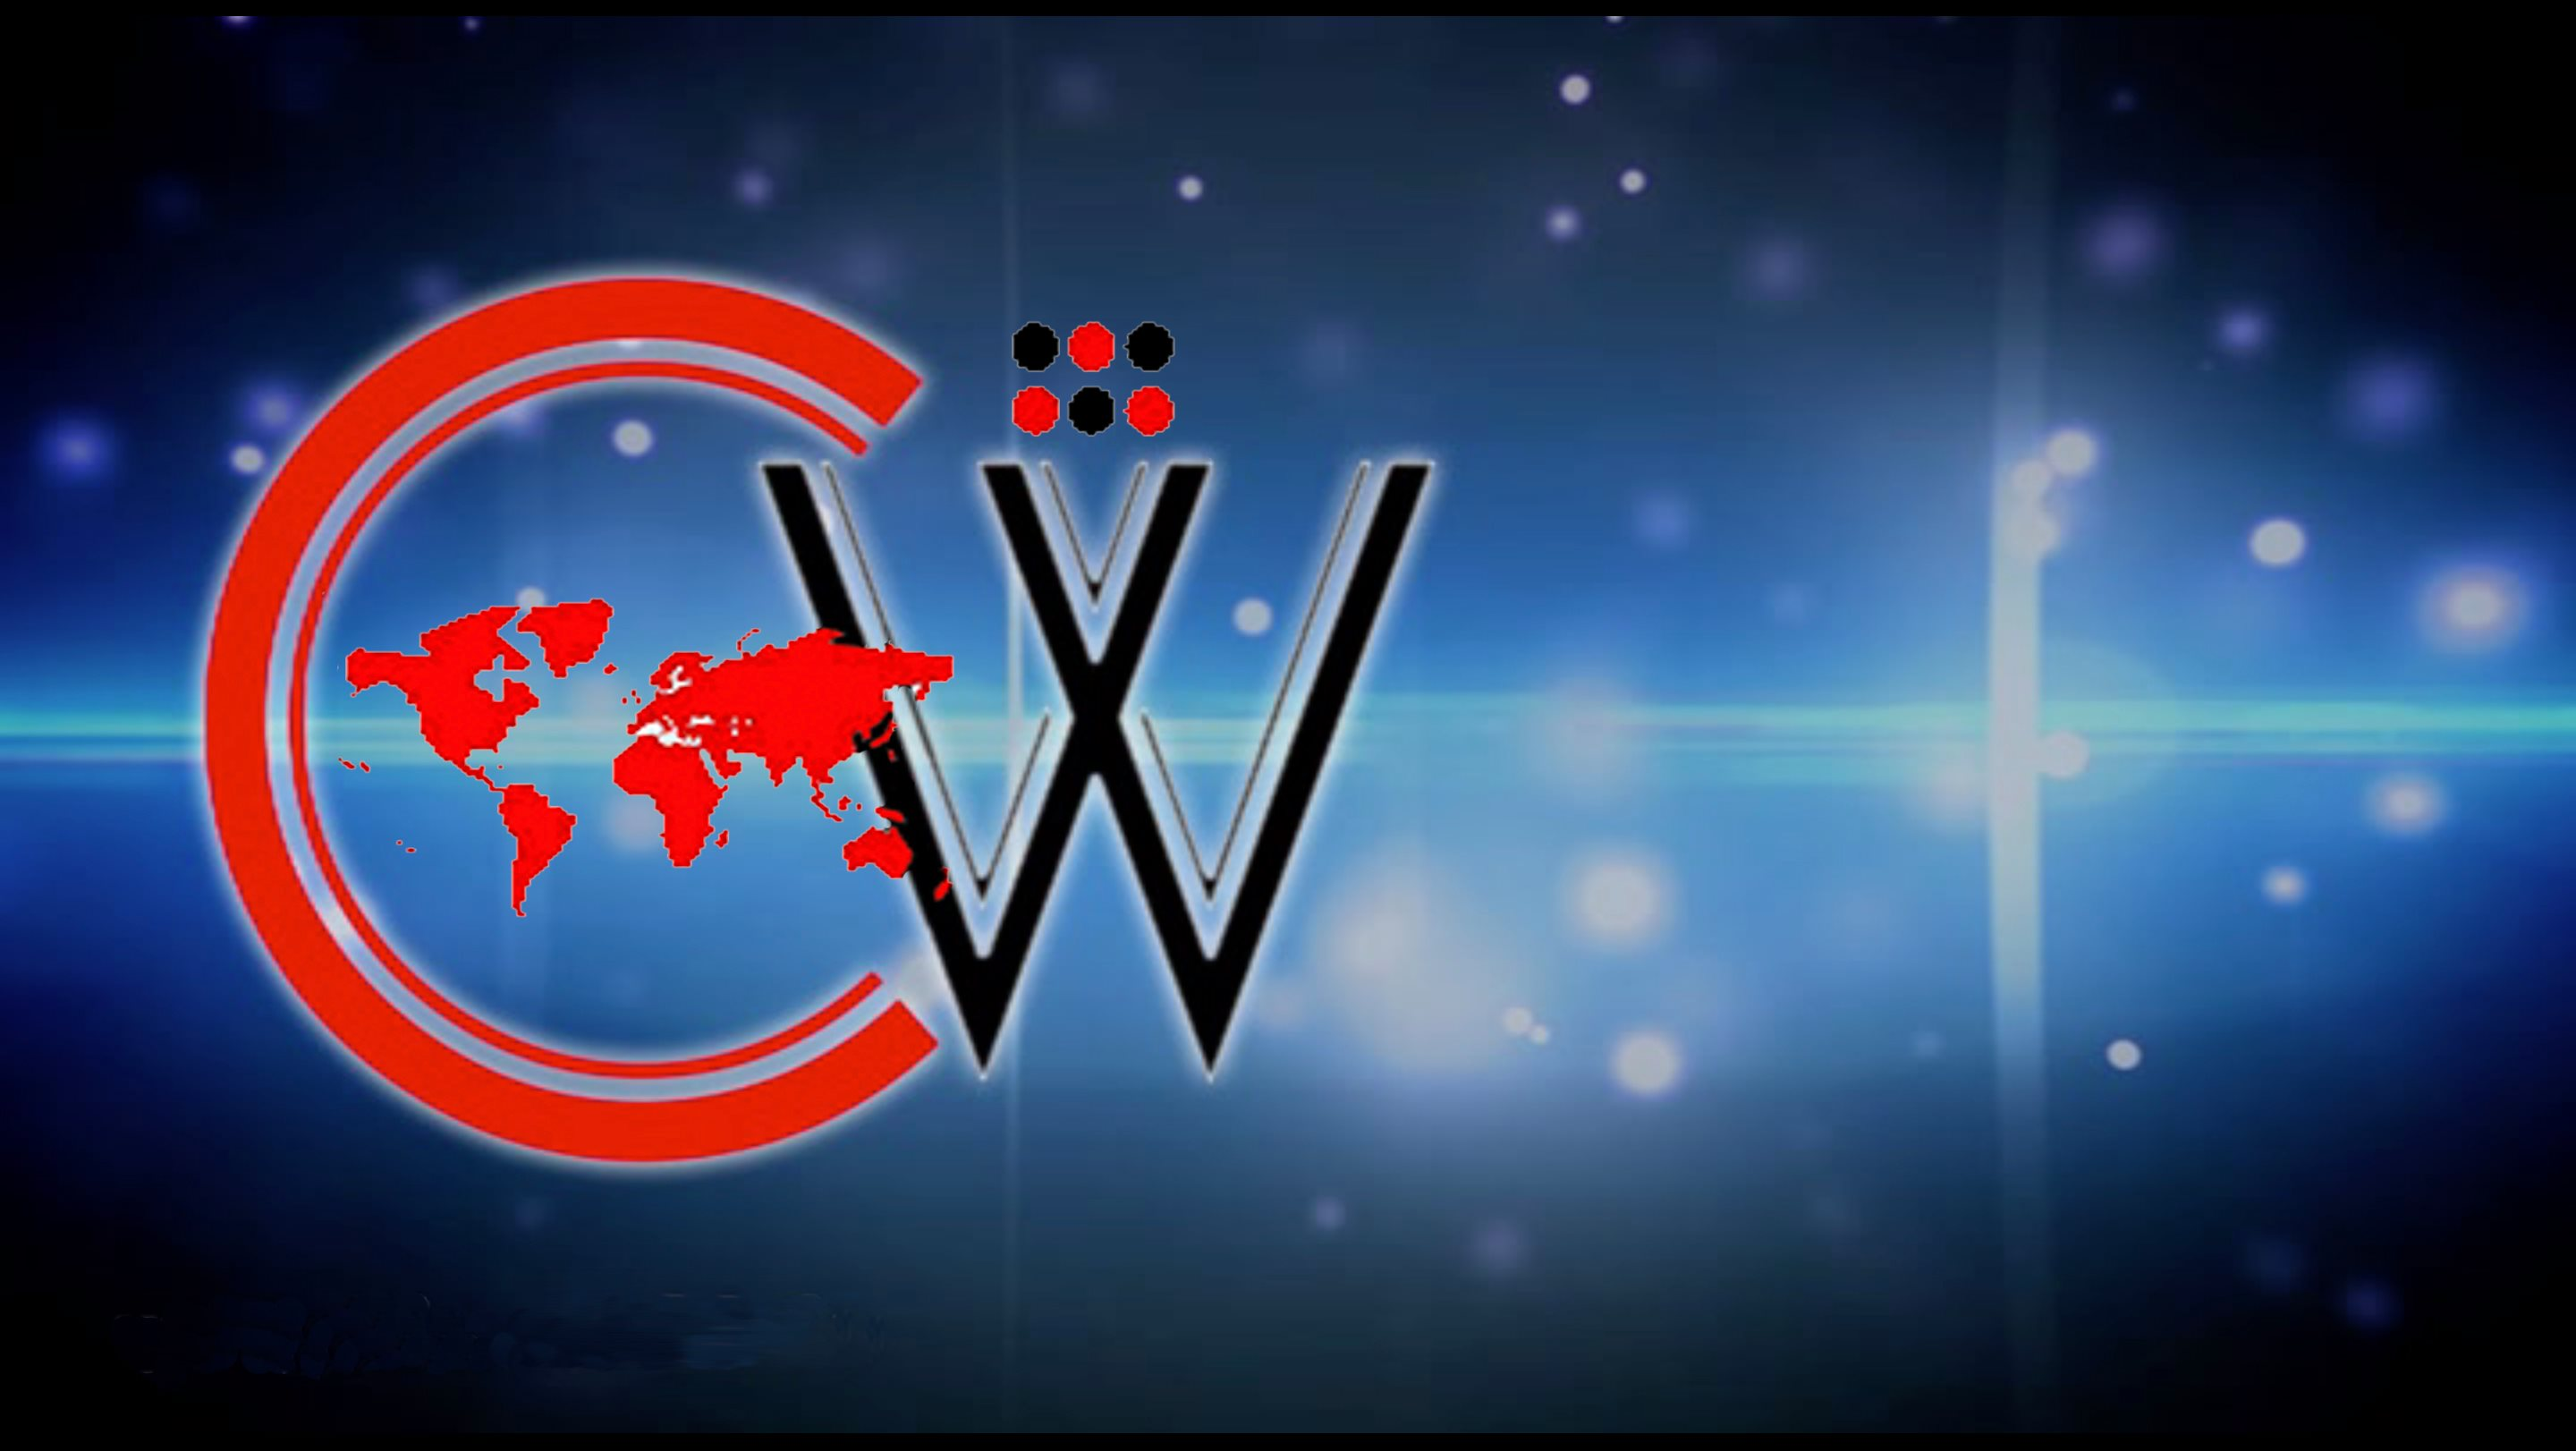 Chin World TV